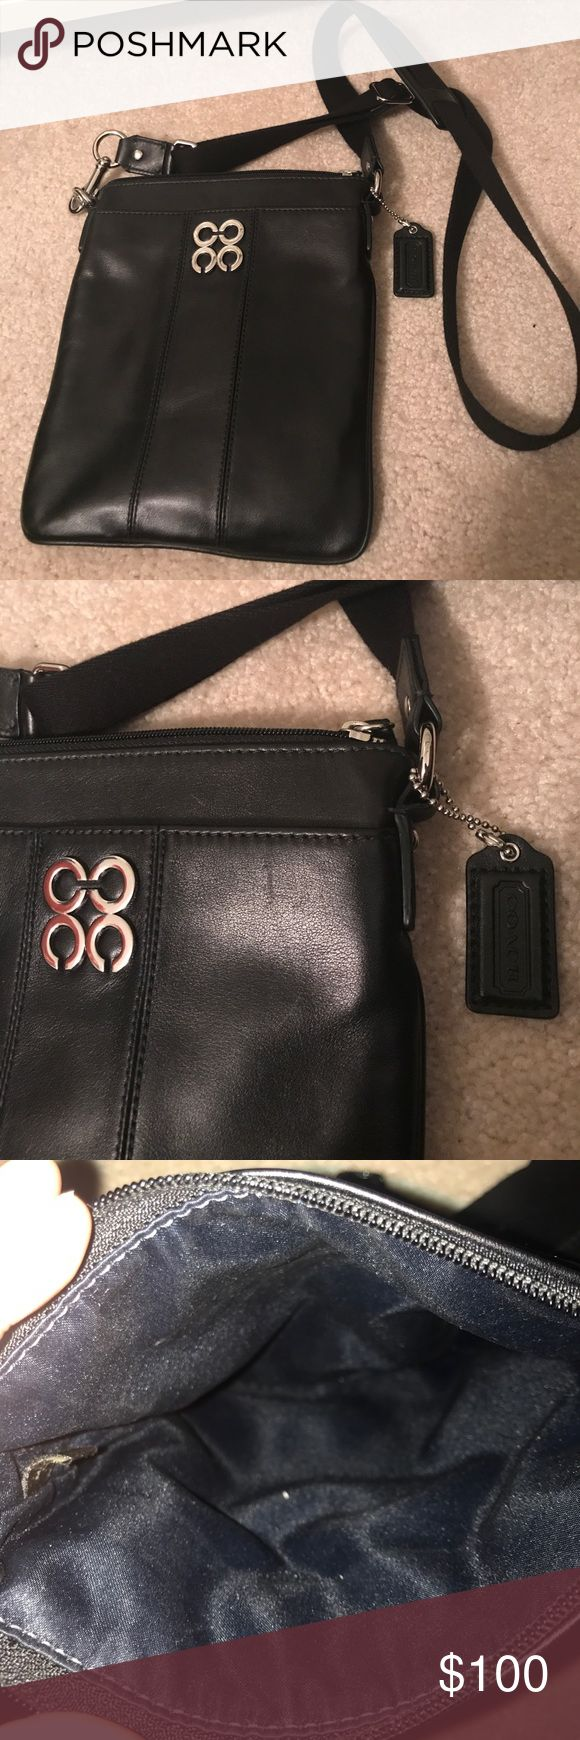 Authentic Coach Cross Body NWOT black Coach cross body purse! Great condition easy to throw accords you for a night out. Open front pocket with silver details, large zippers to center pocket. Willing to negotiate price! Coach Bags Crossbody Bags